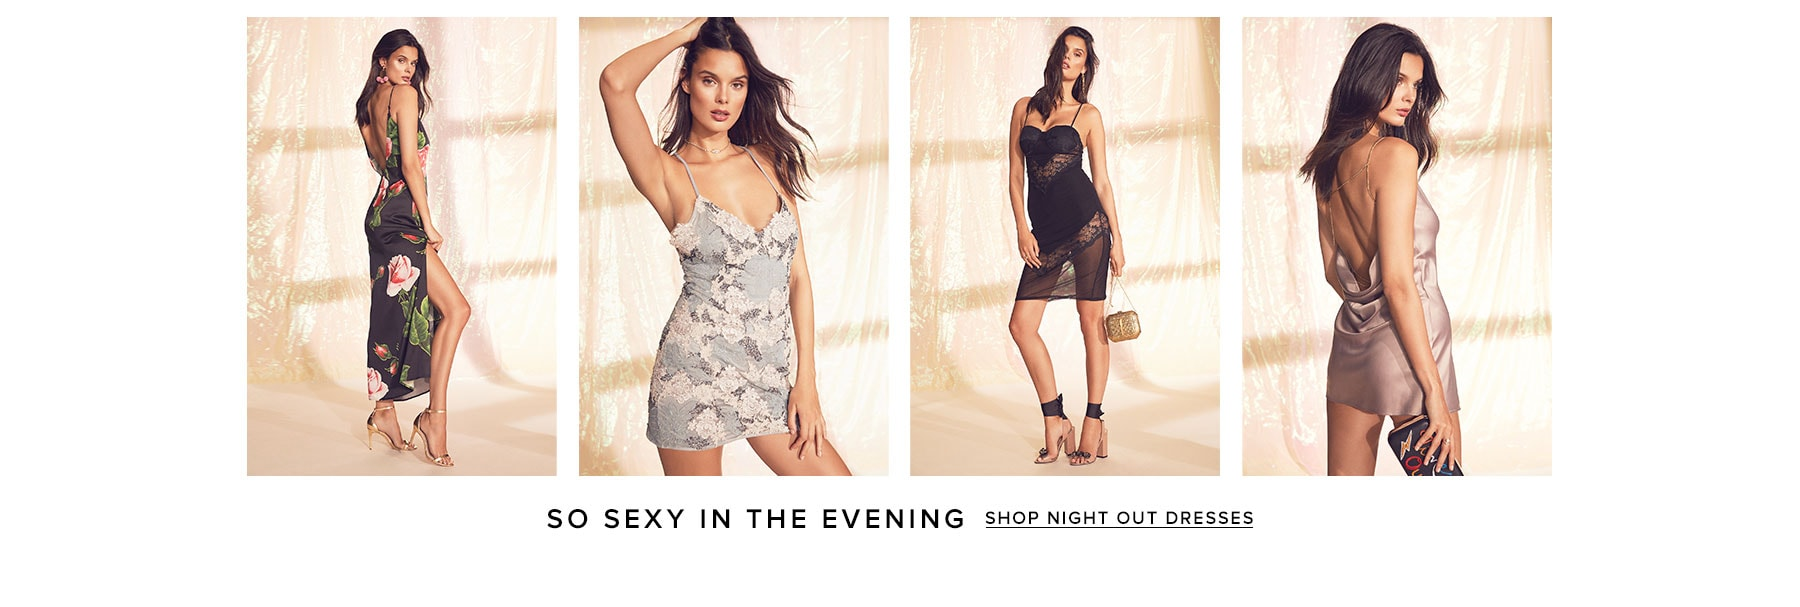 So Sexy in the Evening. Shop night out dresses.